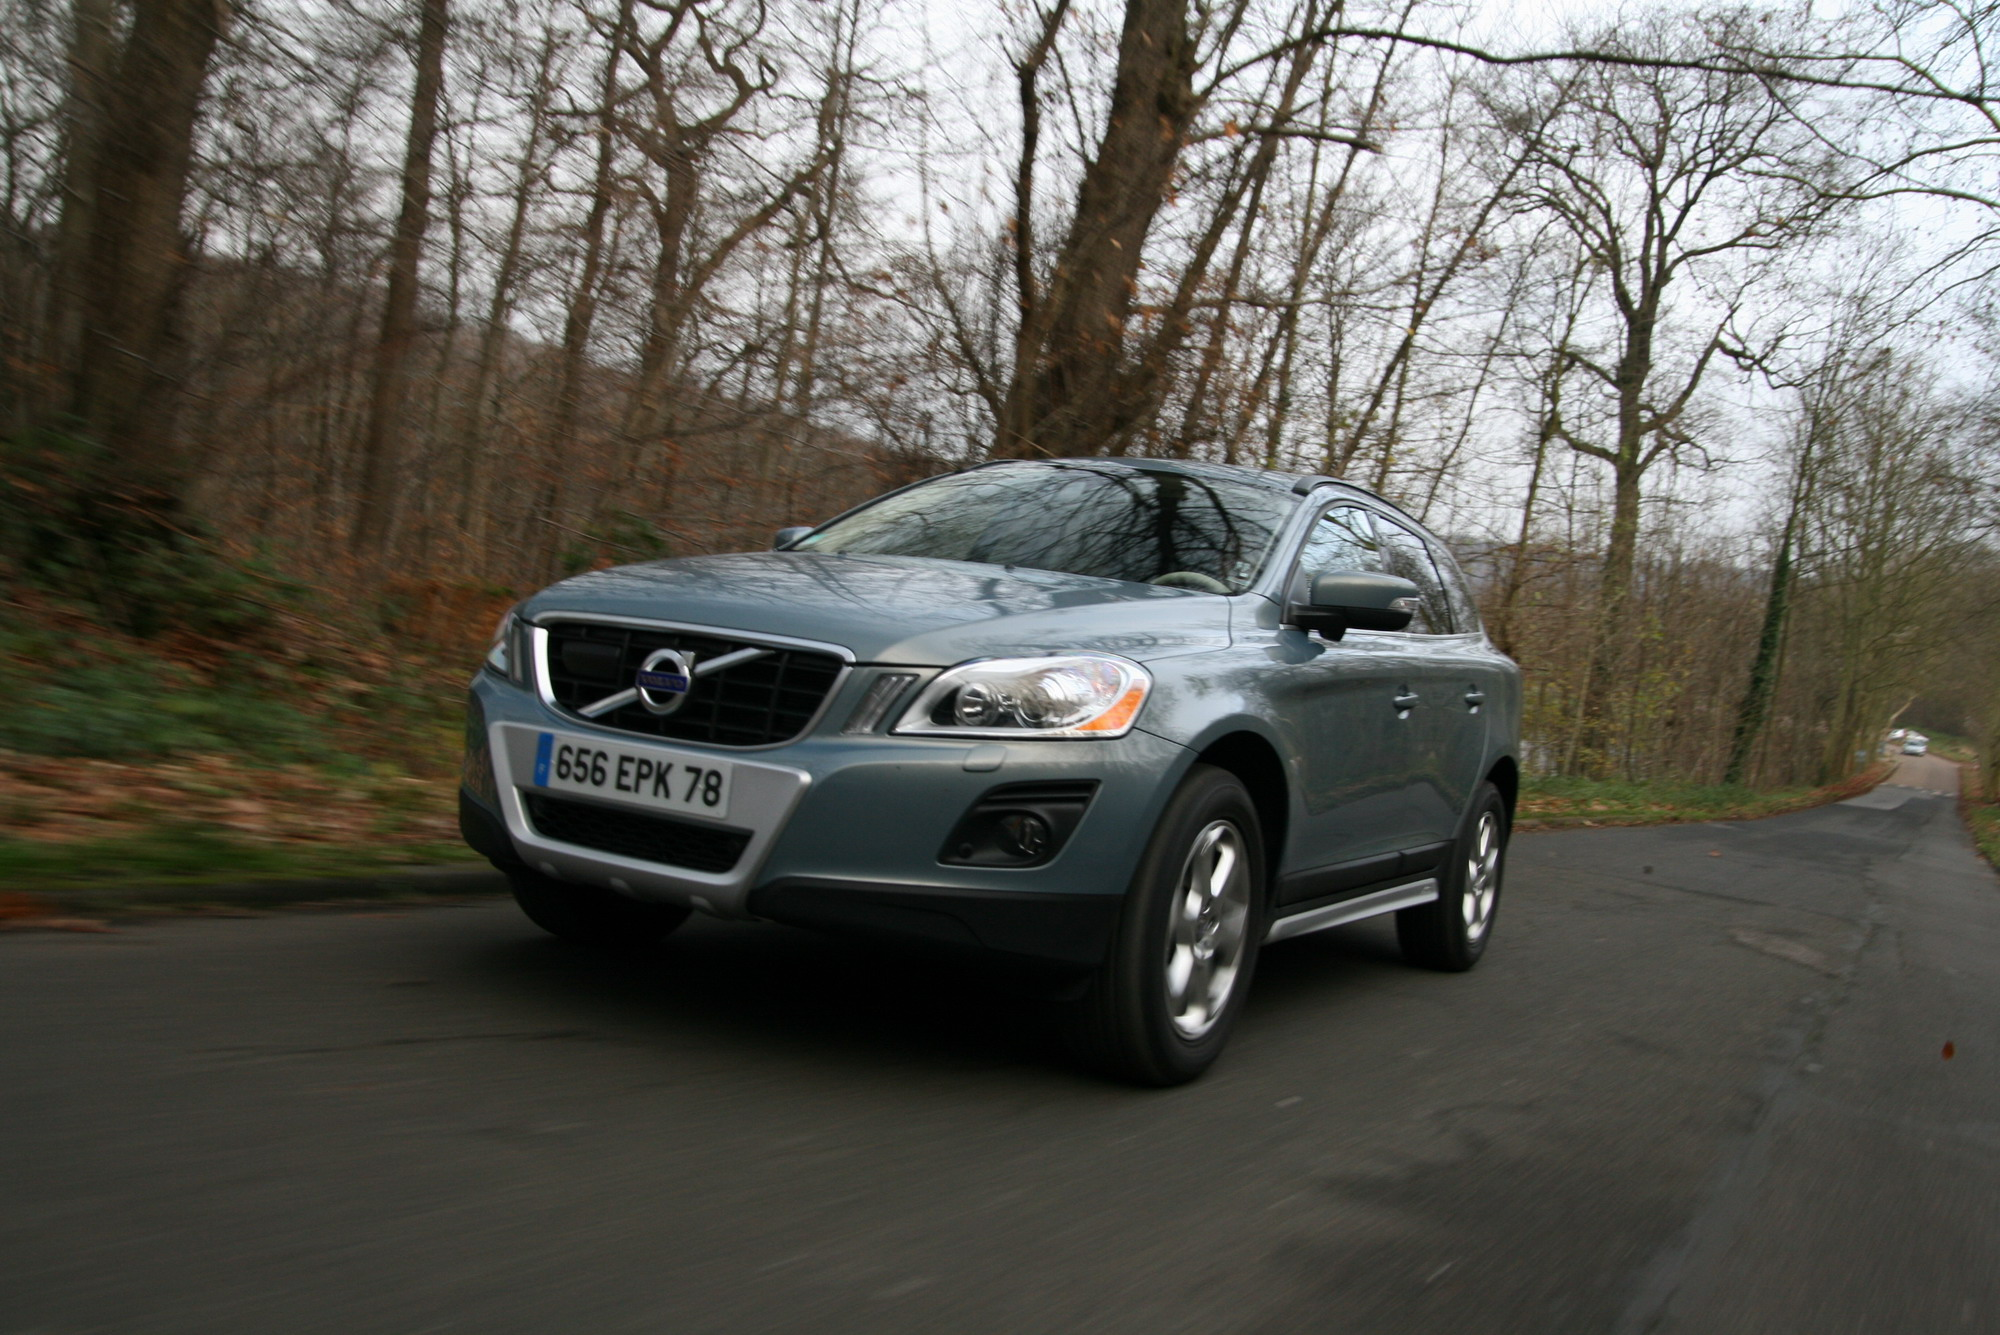 essai vid o volvo xc60 trop d assistance tue le plaisir. Black Bedroom Furniture Sets. Home Design Ideas